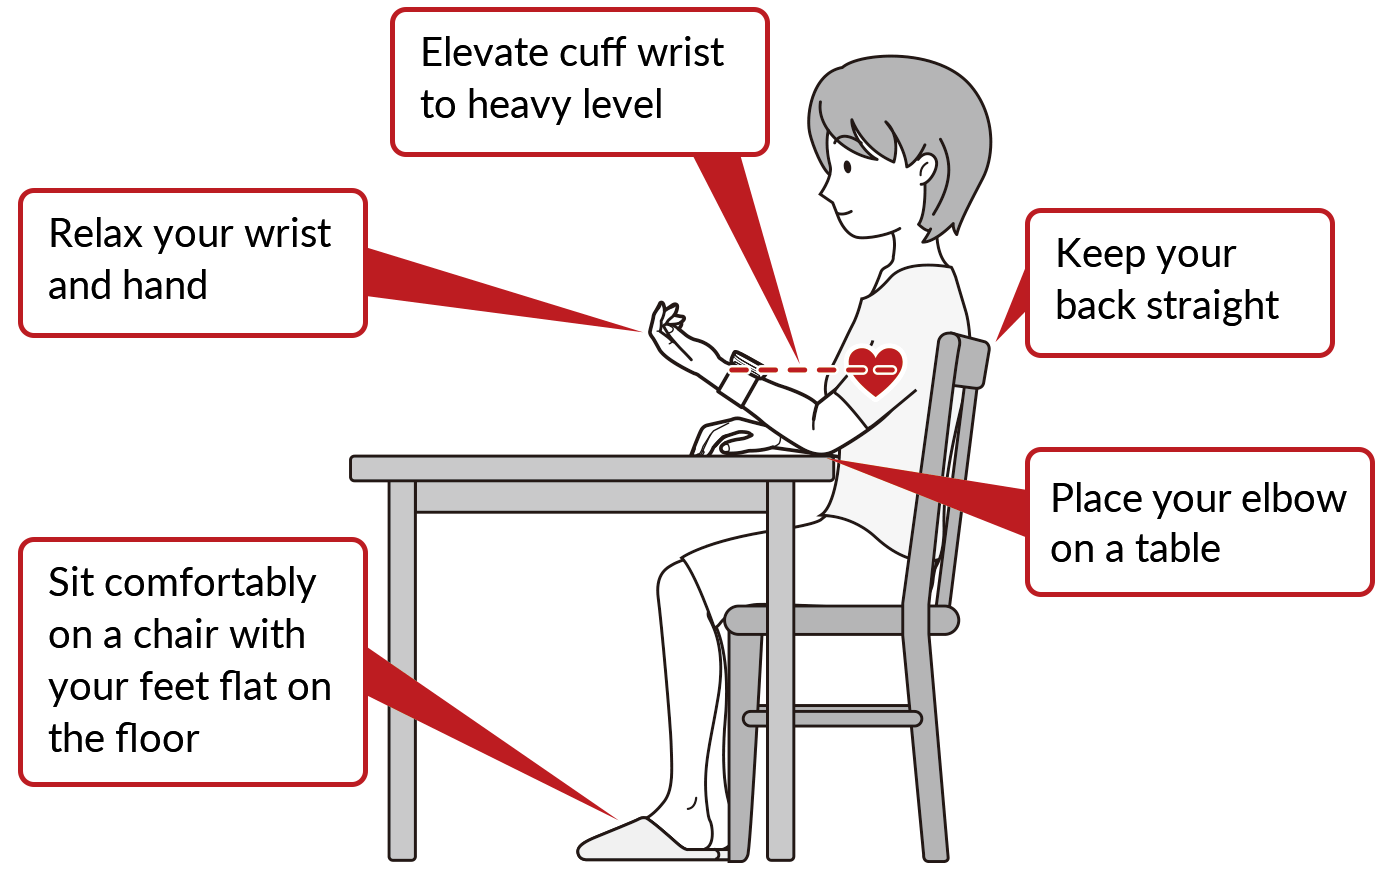 posture monitoring chair ngt fishing how to measure blood pressure zero events omron healthcare wrist monitor